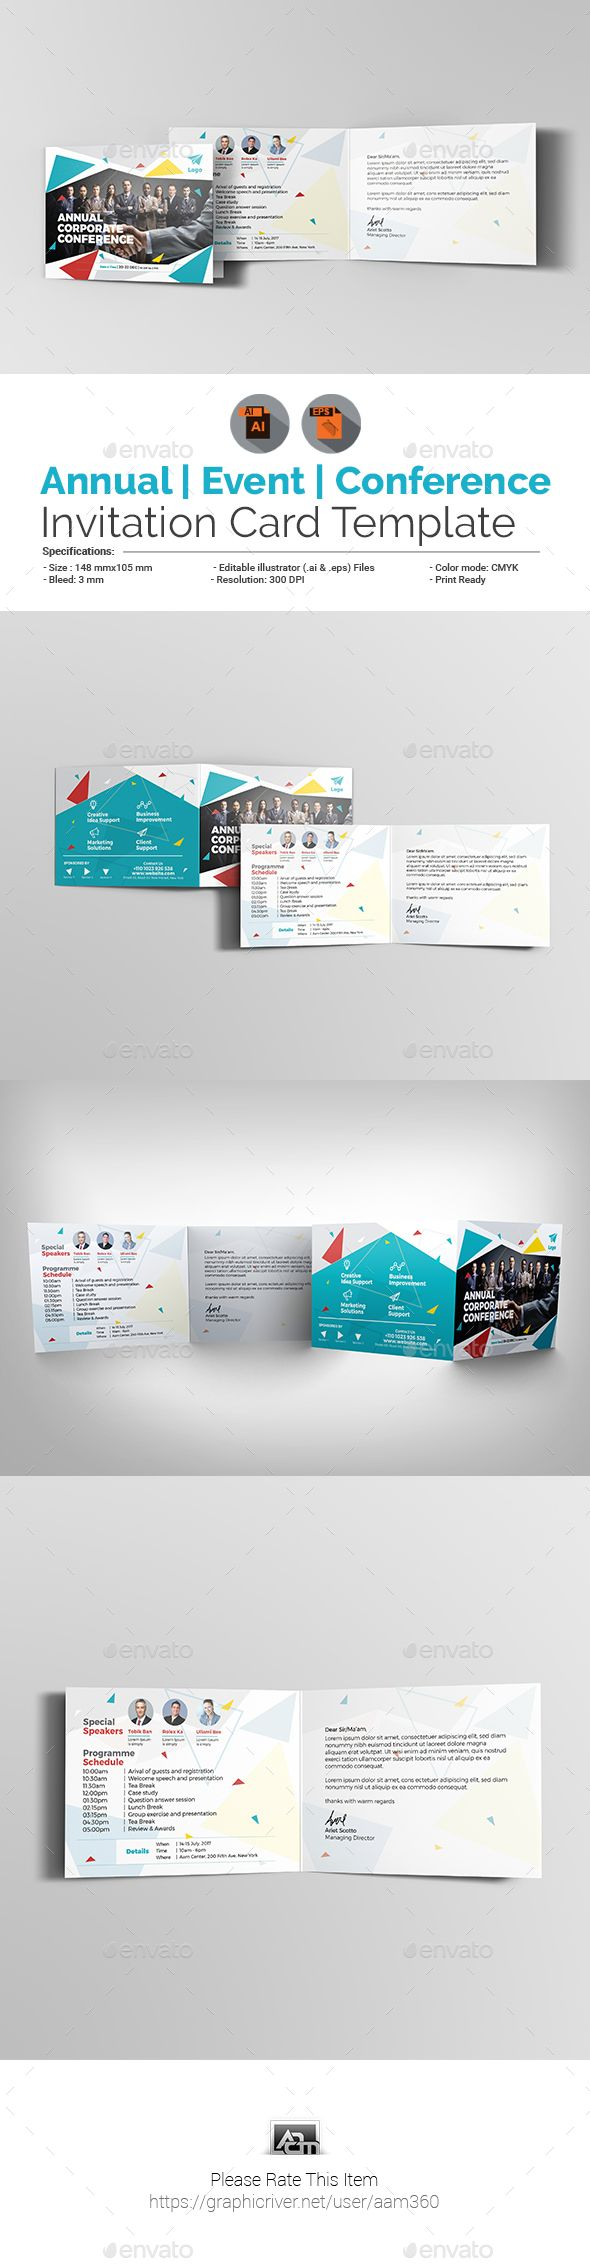 Annual Corporate EventConference Invitation Card  Template